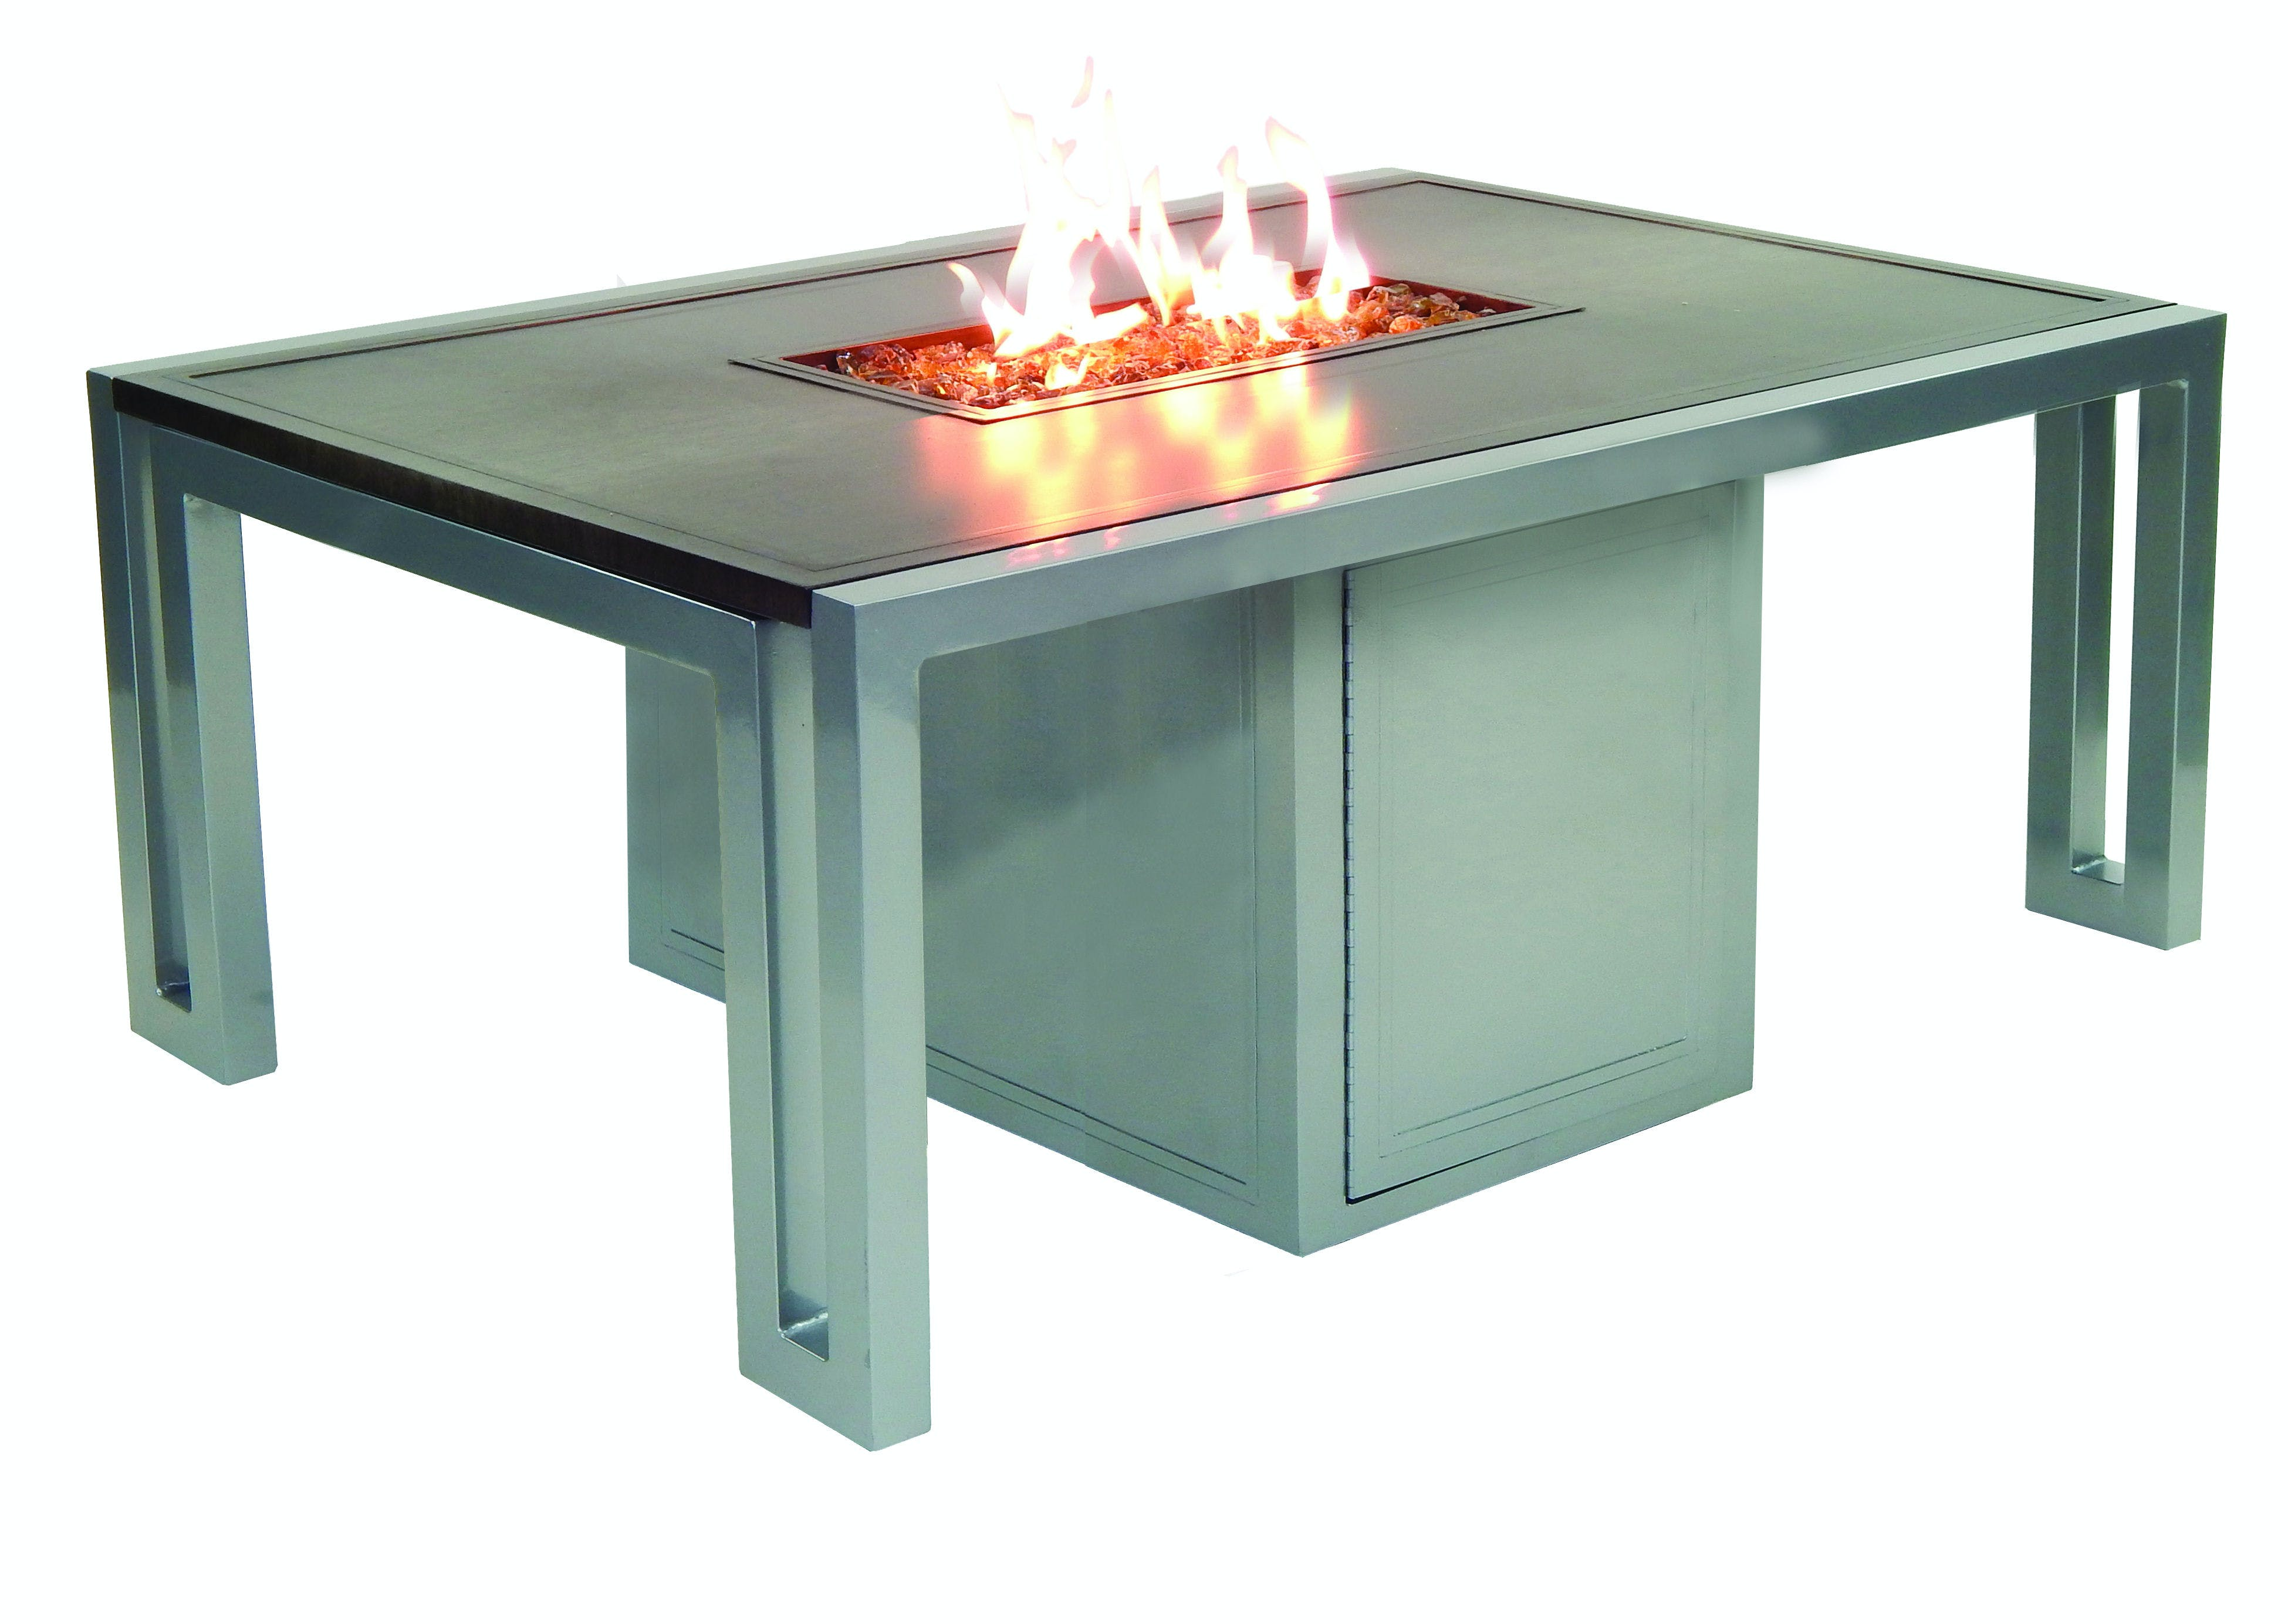 Picture of: Fh Casual Icon Rectangular Firepit Coffee Table The Fire House Casual Living Store